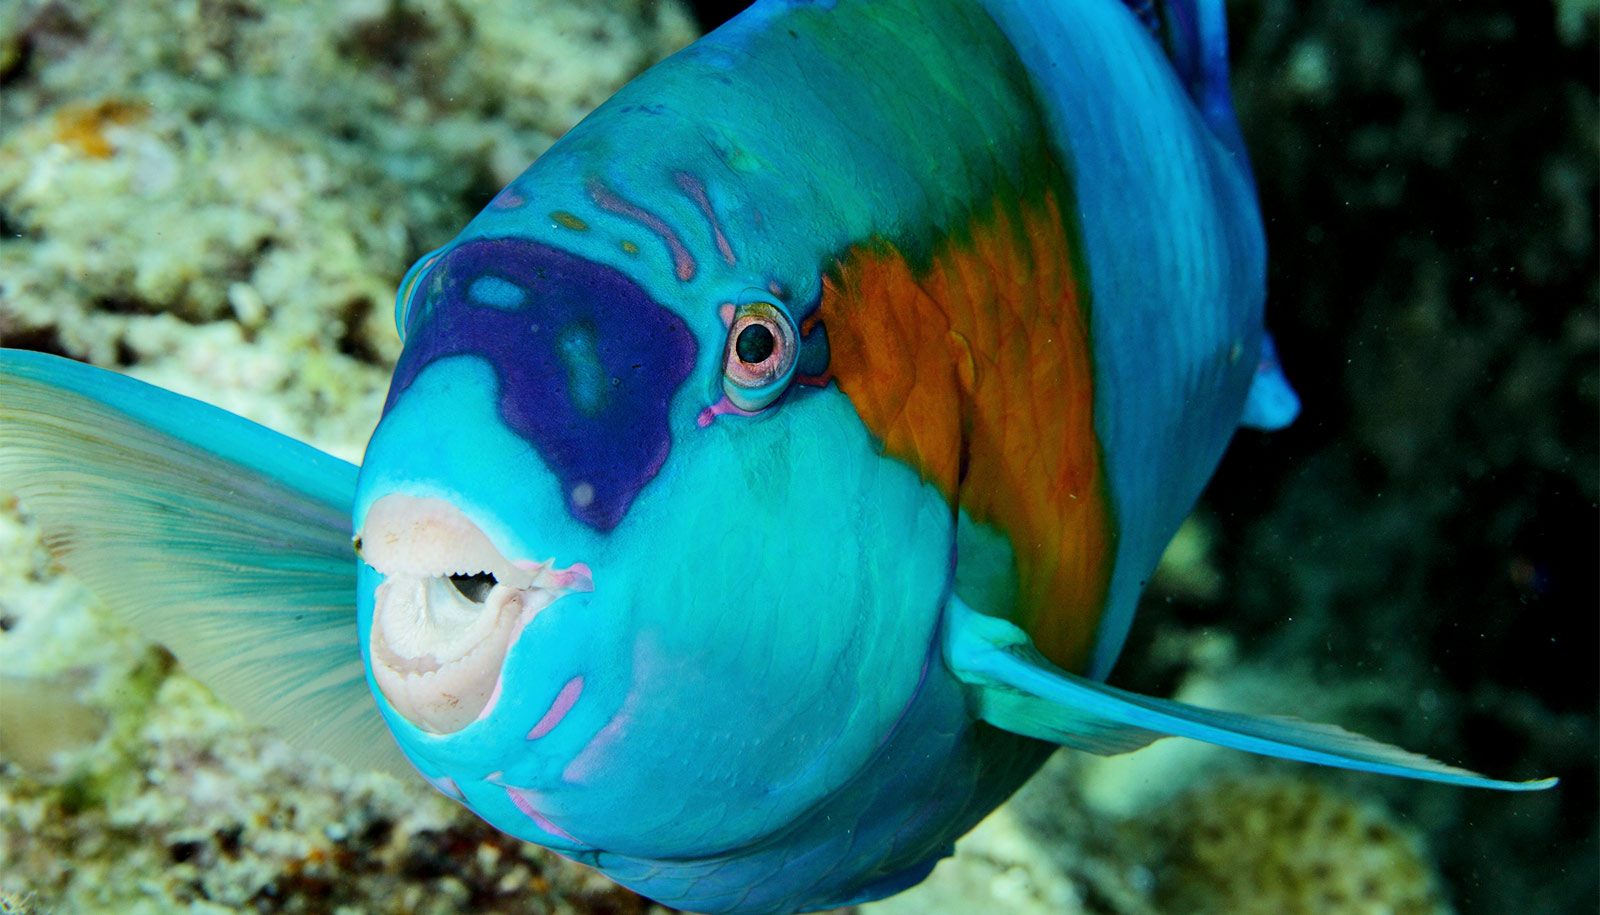 Fishing for 'herbivores of the sea' could risk coral reefs